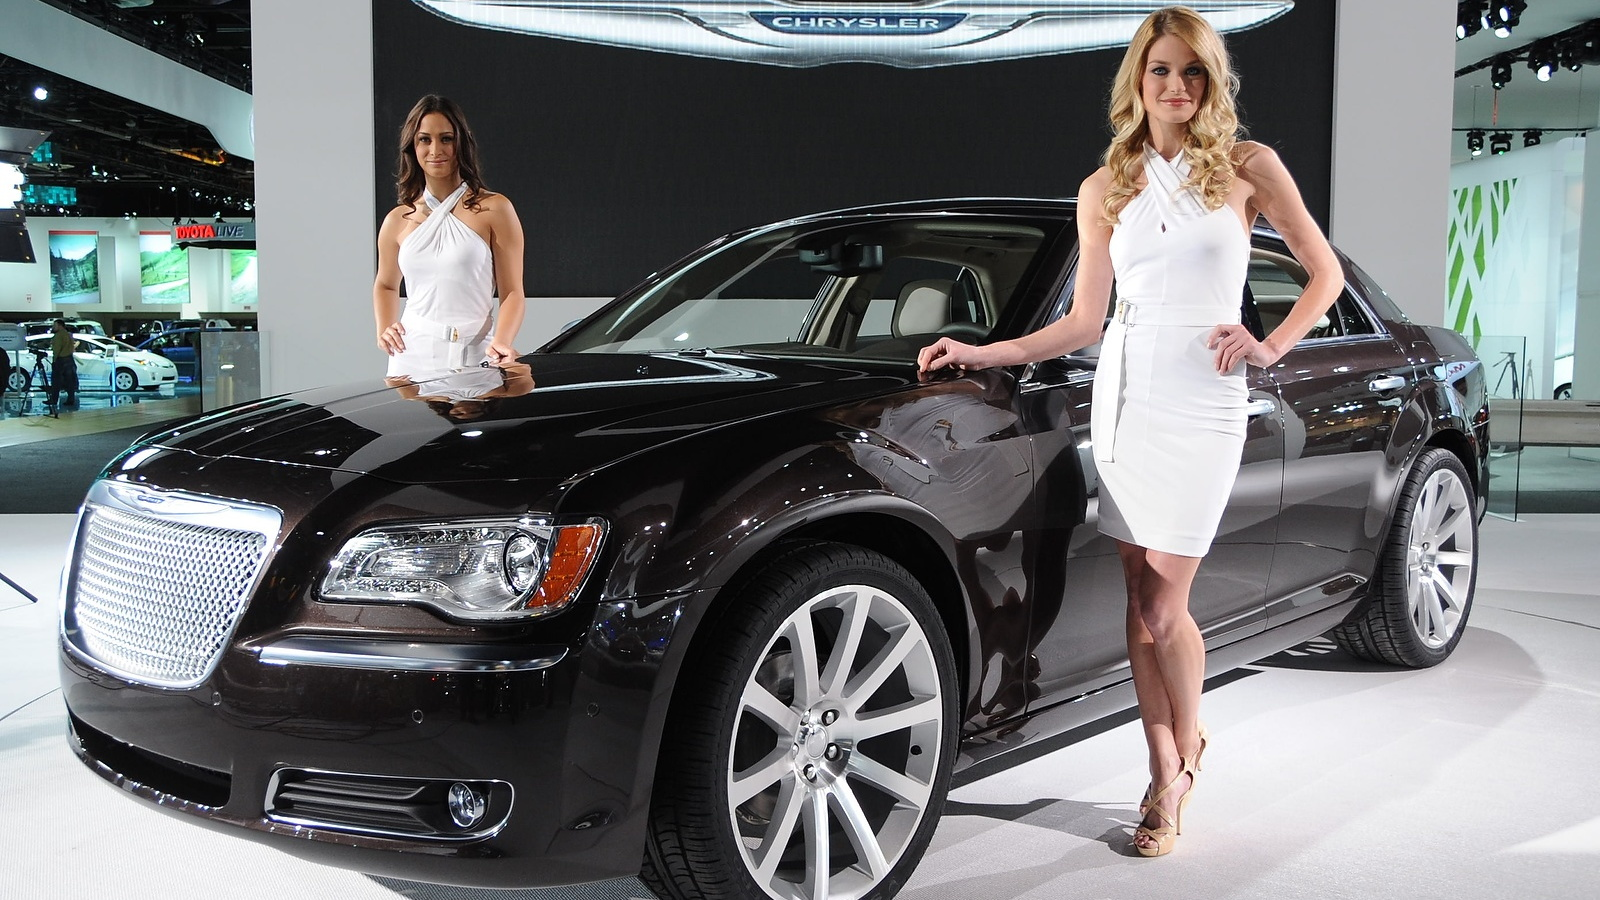 2011 Chrysler 300. Photo by Joe Nuxoll.